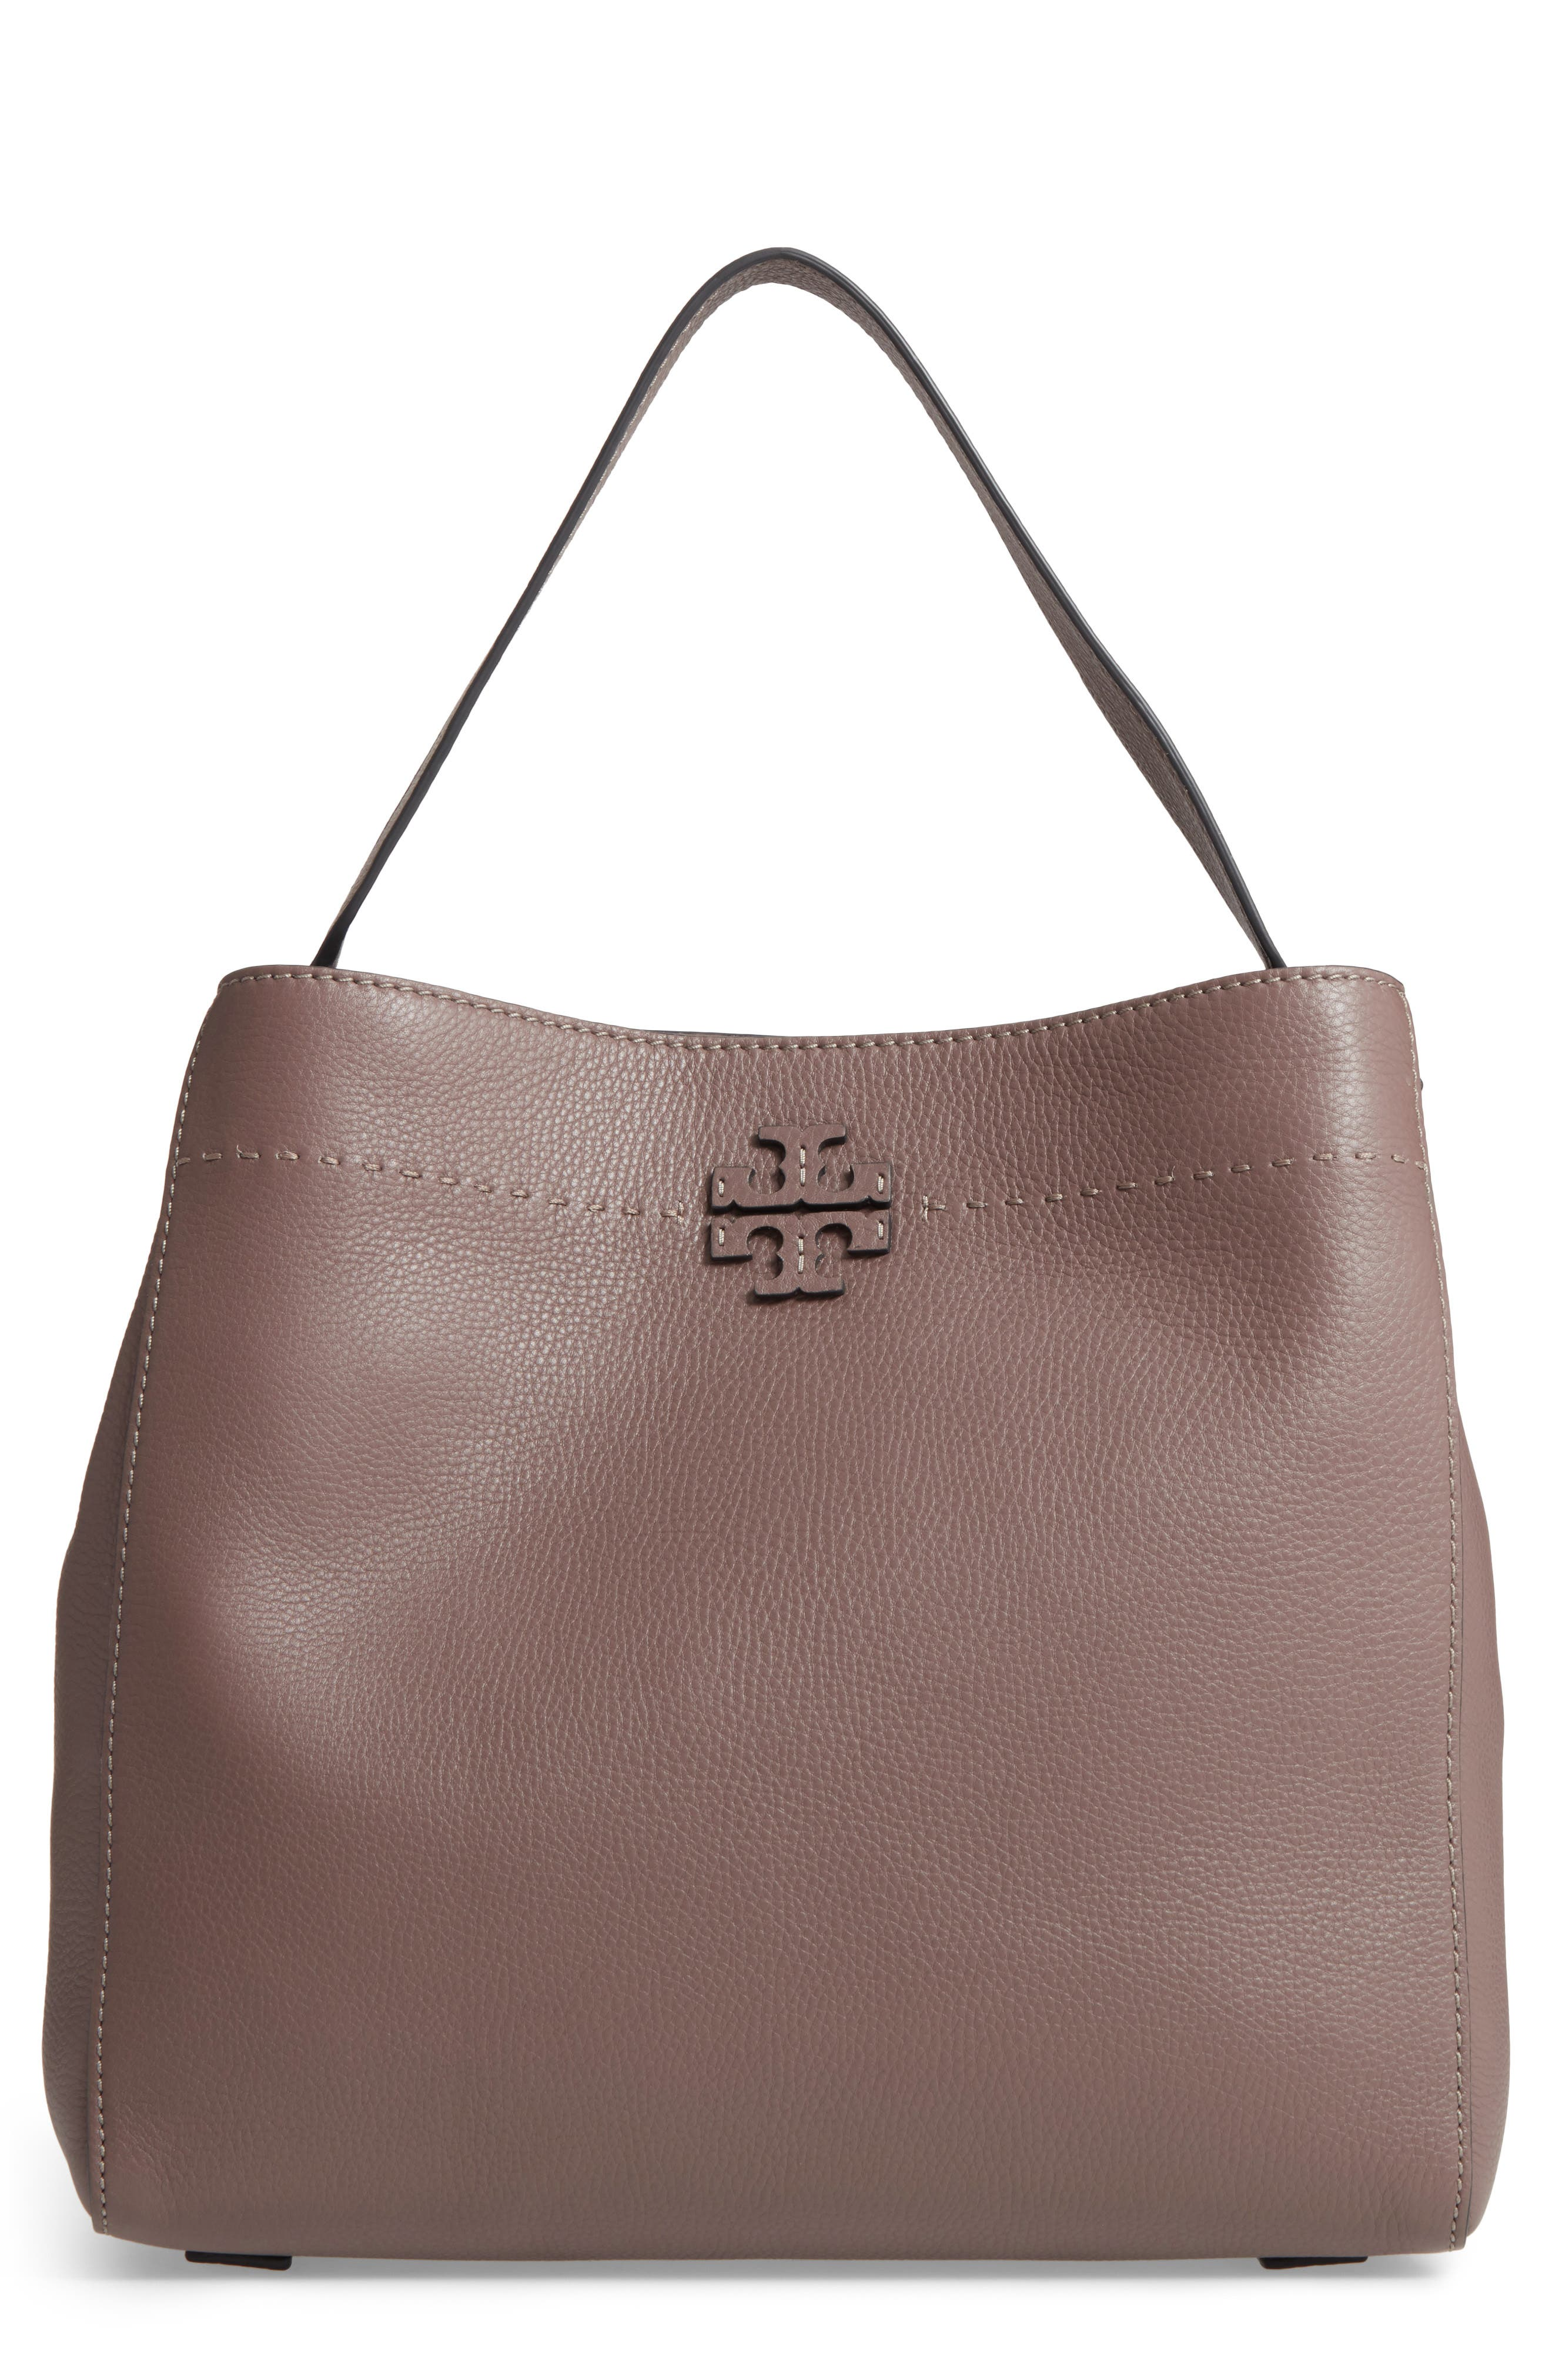 Alternate Image 1 Selected - Tory Burch McGraw Leather Hobo